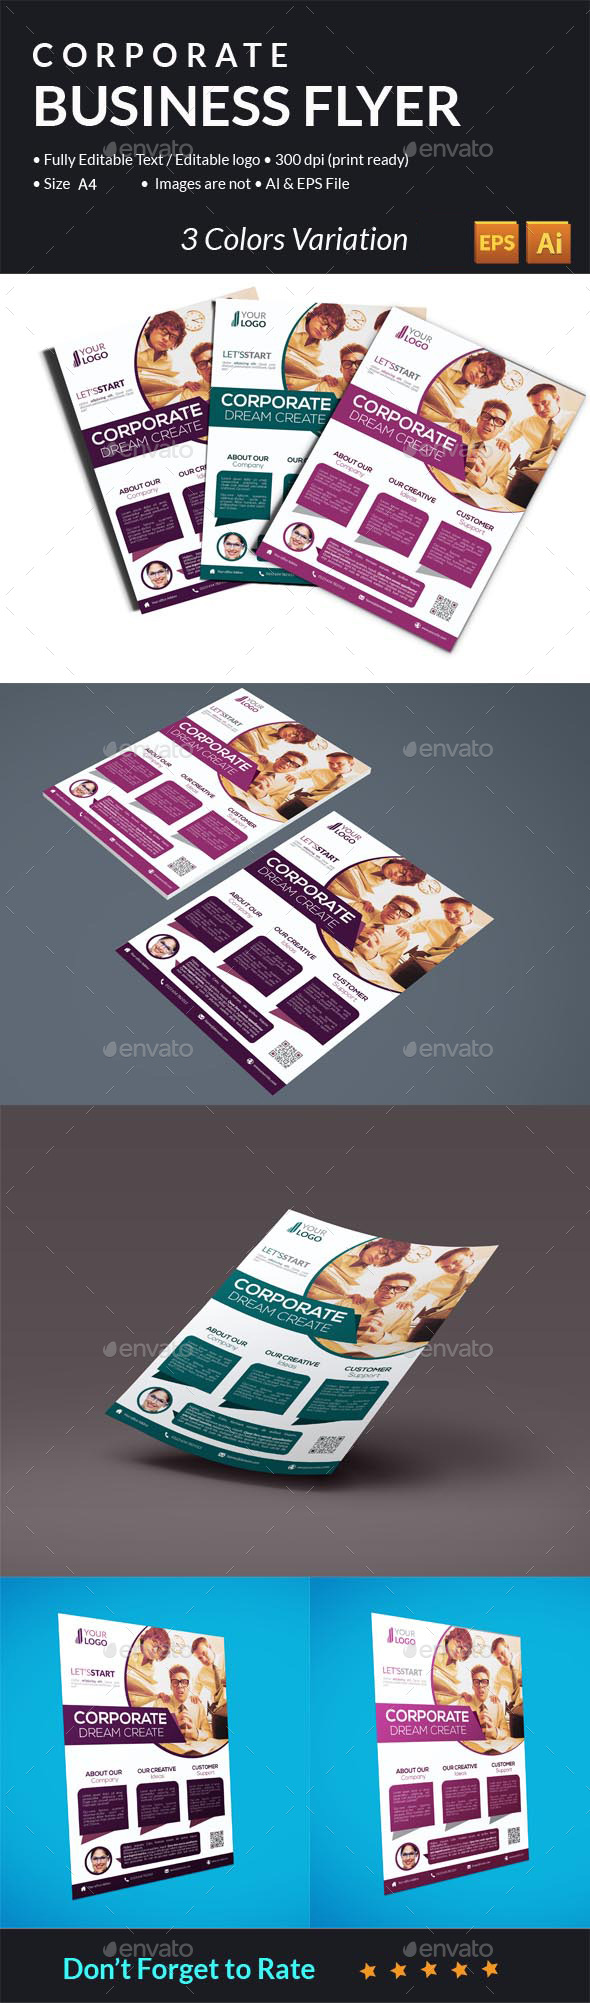 GraphicRiver Minimal Corporate Flyer 10759289